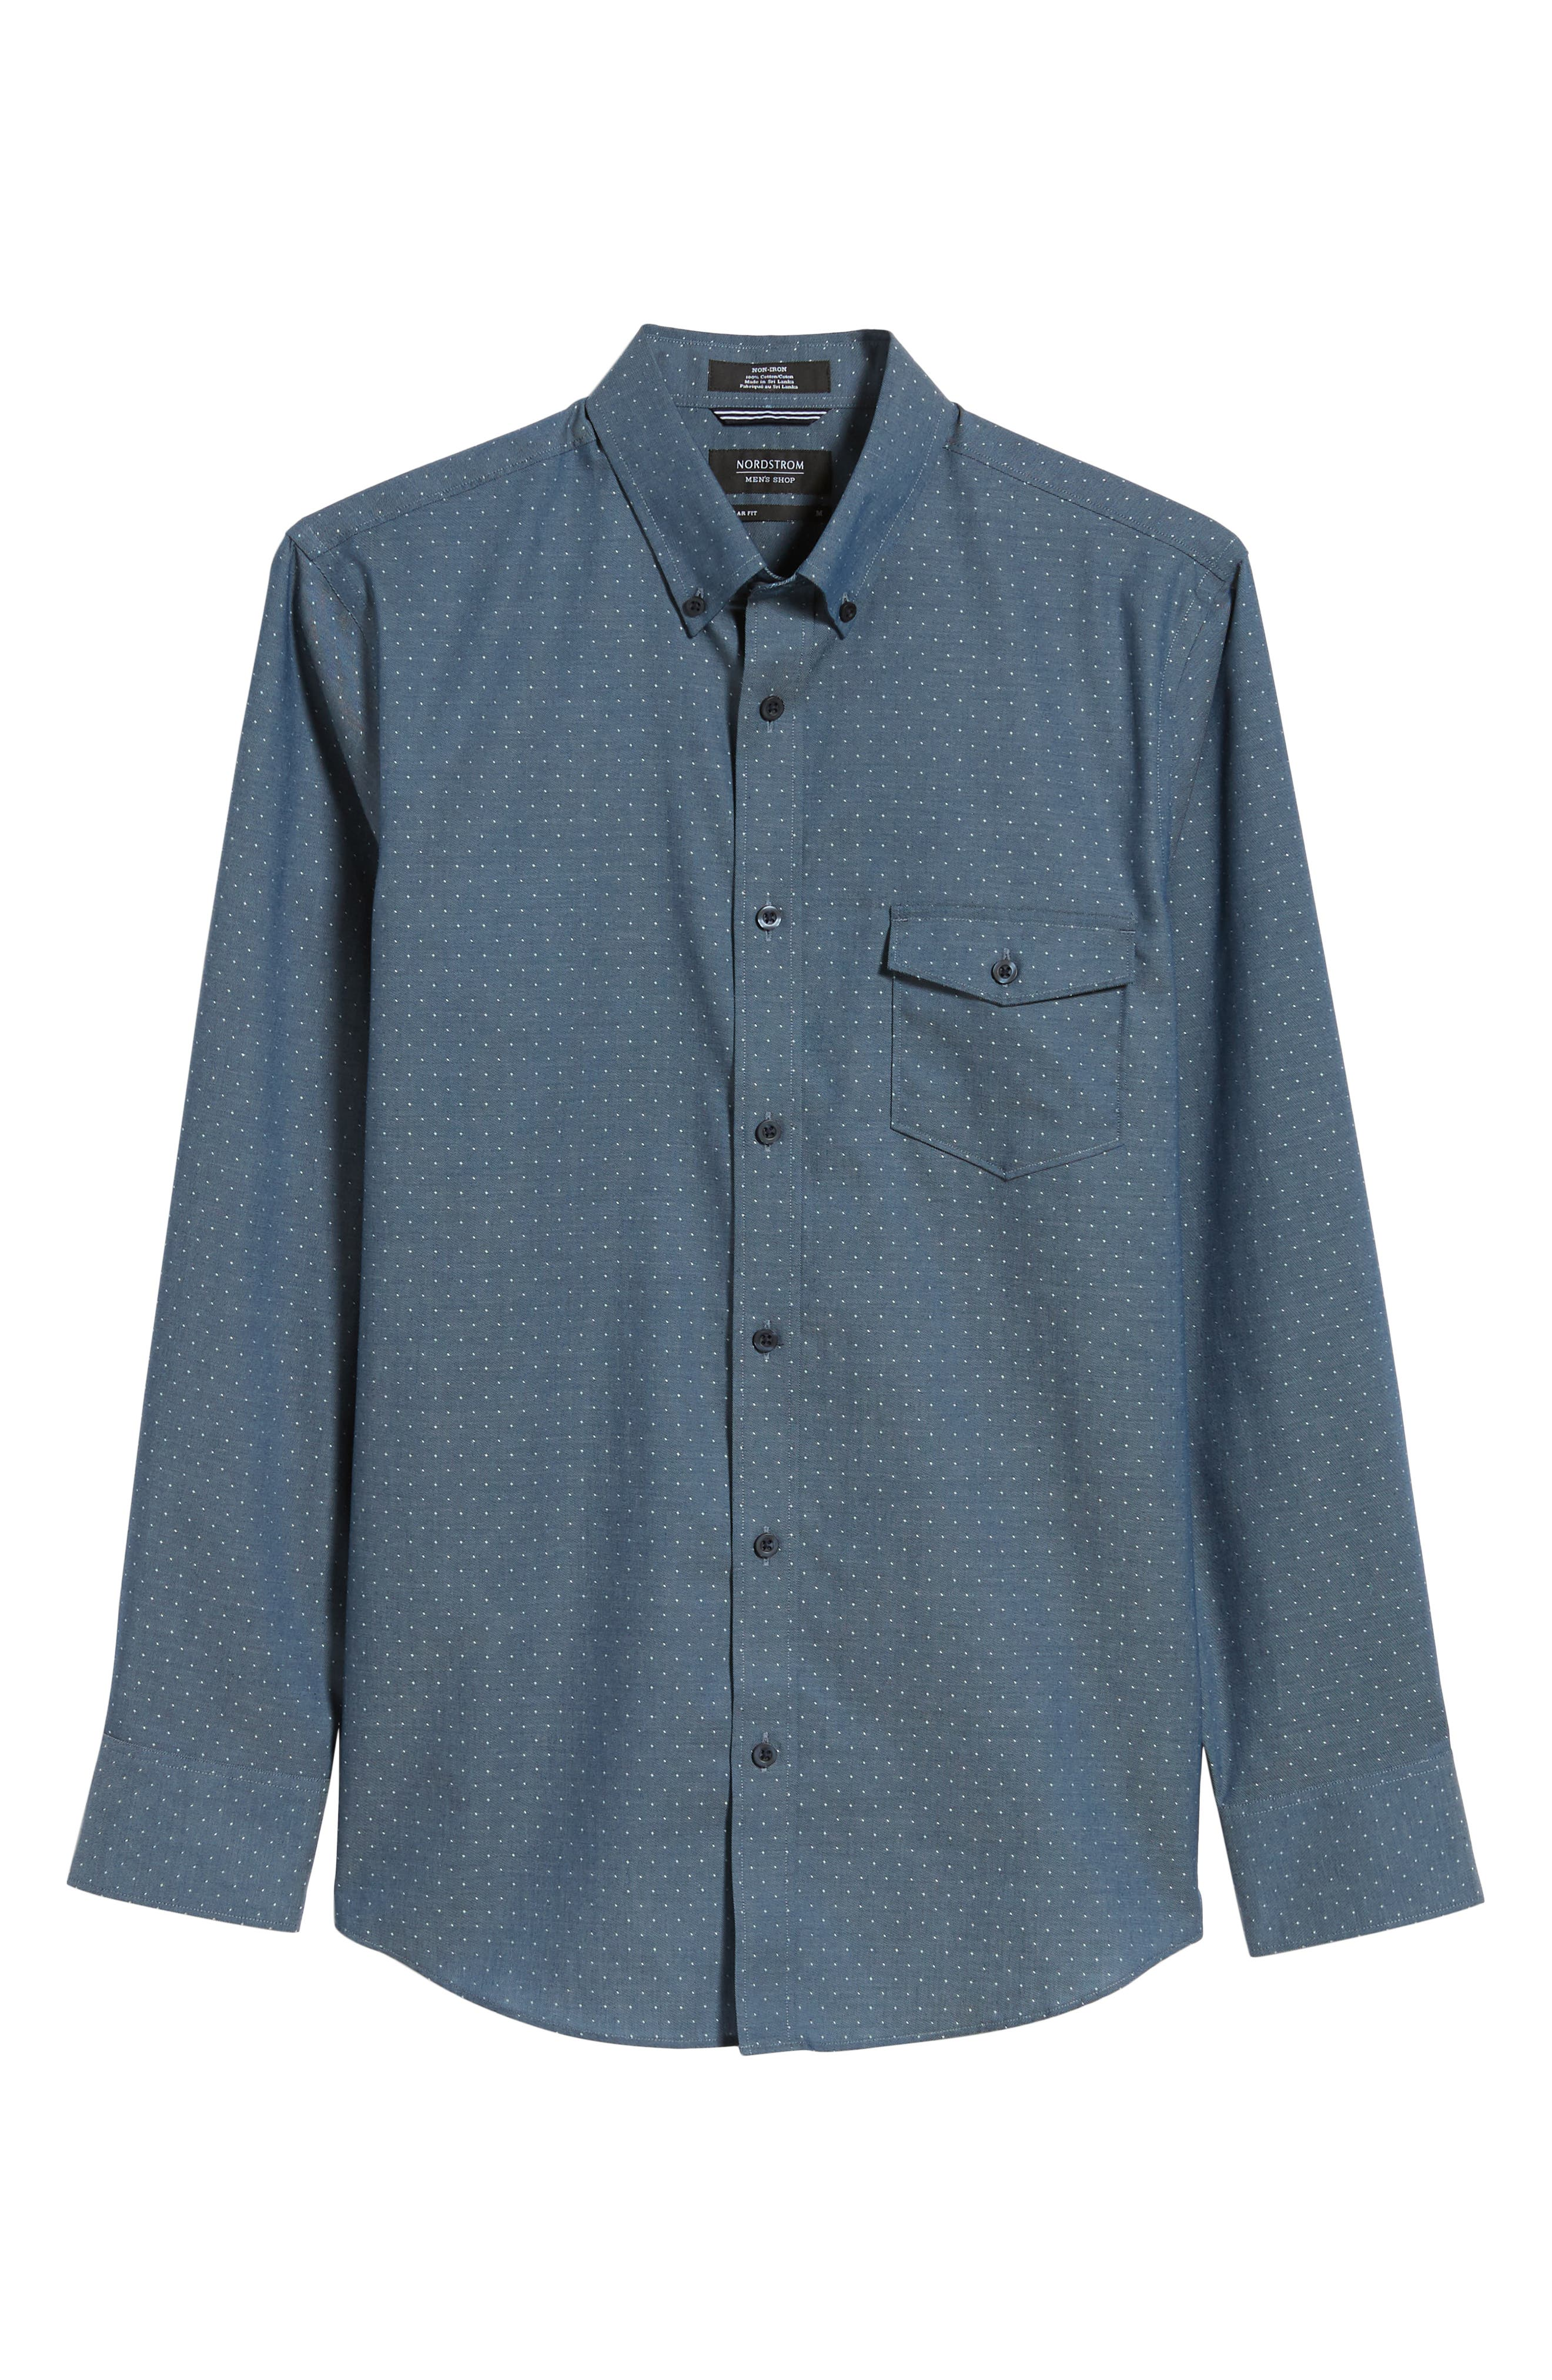 Regular Fit Dobby No-Iron Sport Shirt,                             Alternate thumbnail 6, color,                             NAVY ARMADA CHAMBRAY DOBBY